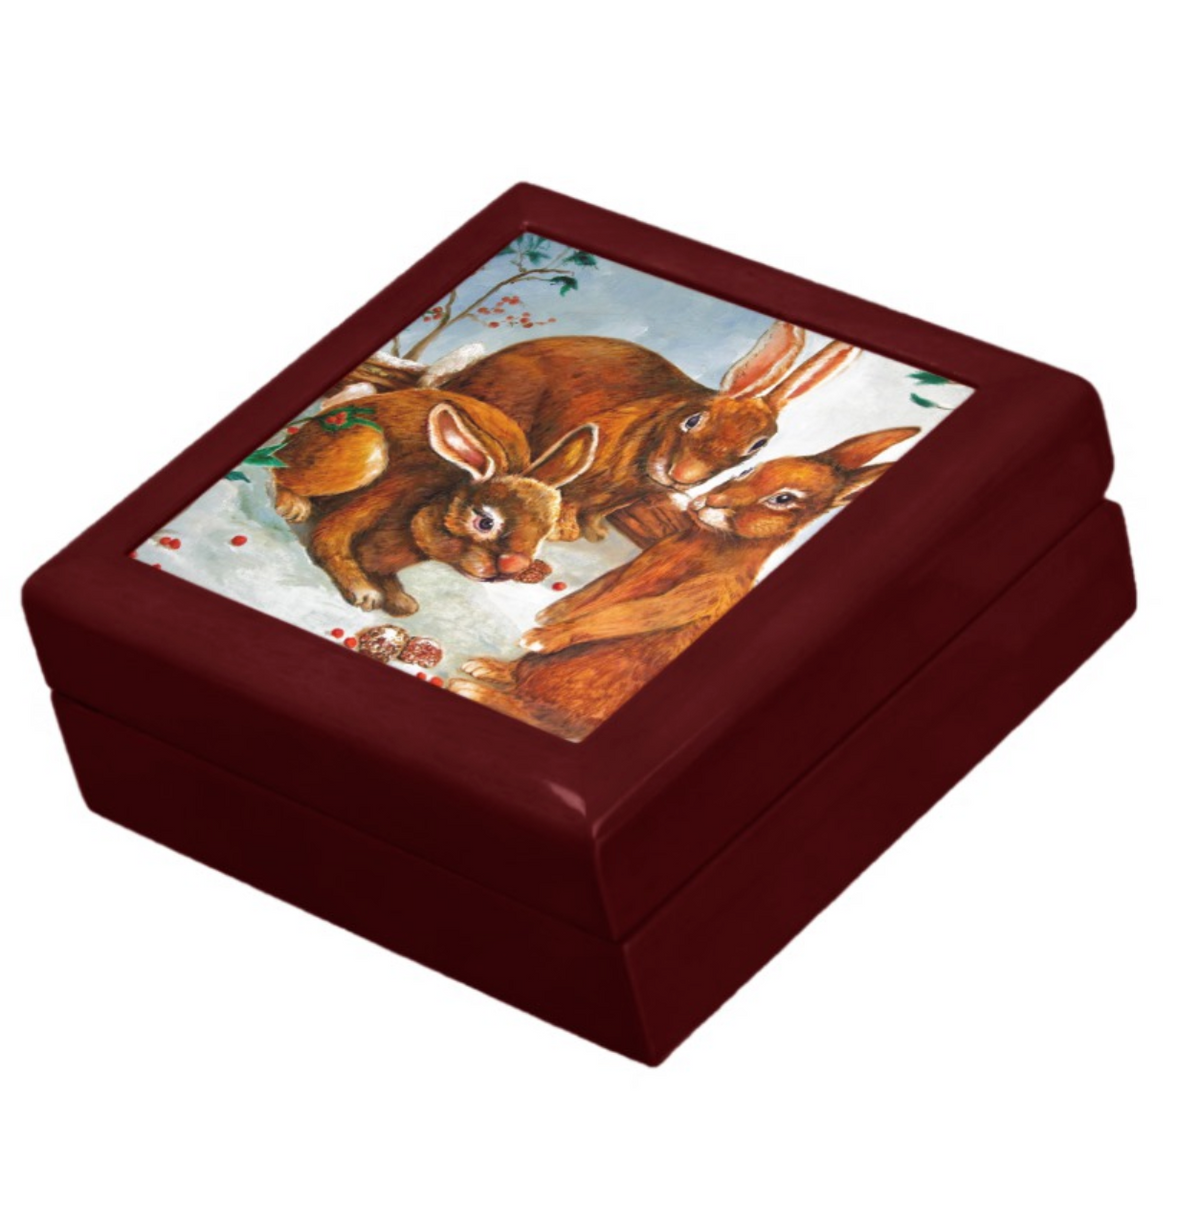 Lacquered Keepsake Box with Rabbit Design